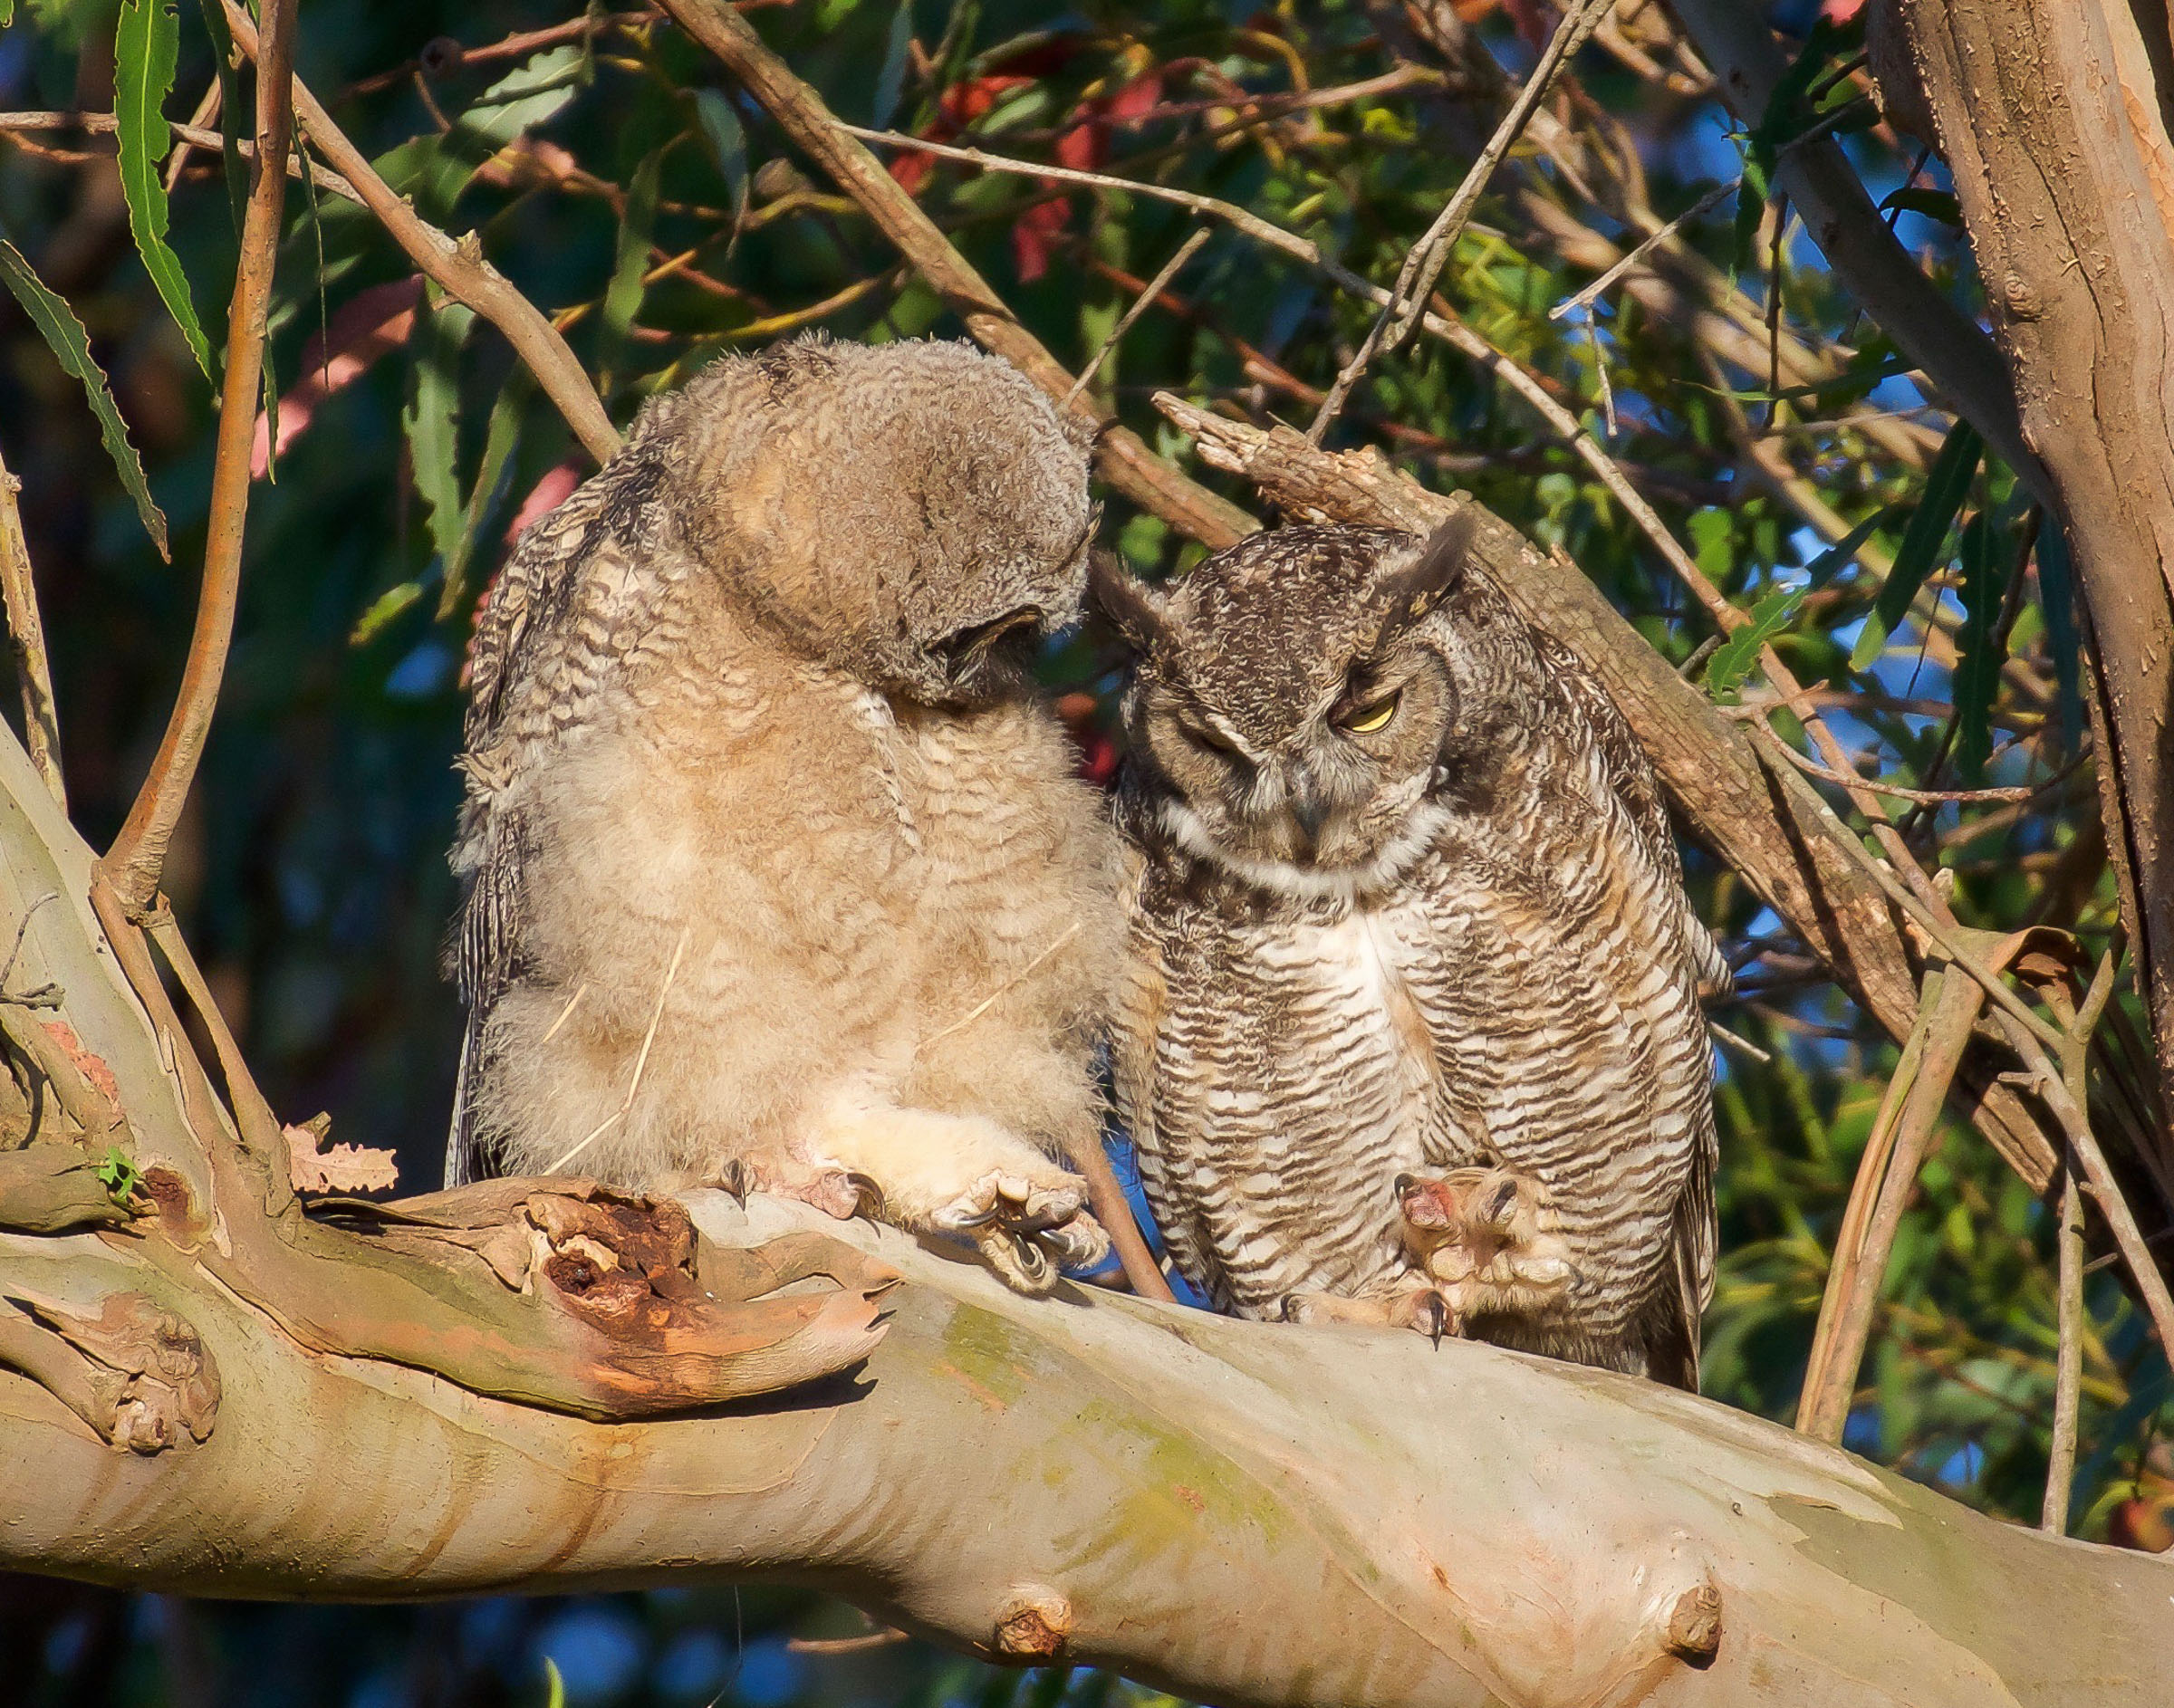 mother-owl-and-owlet-on-branch-grooming-4.jpg